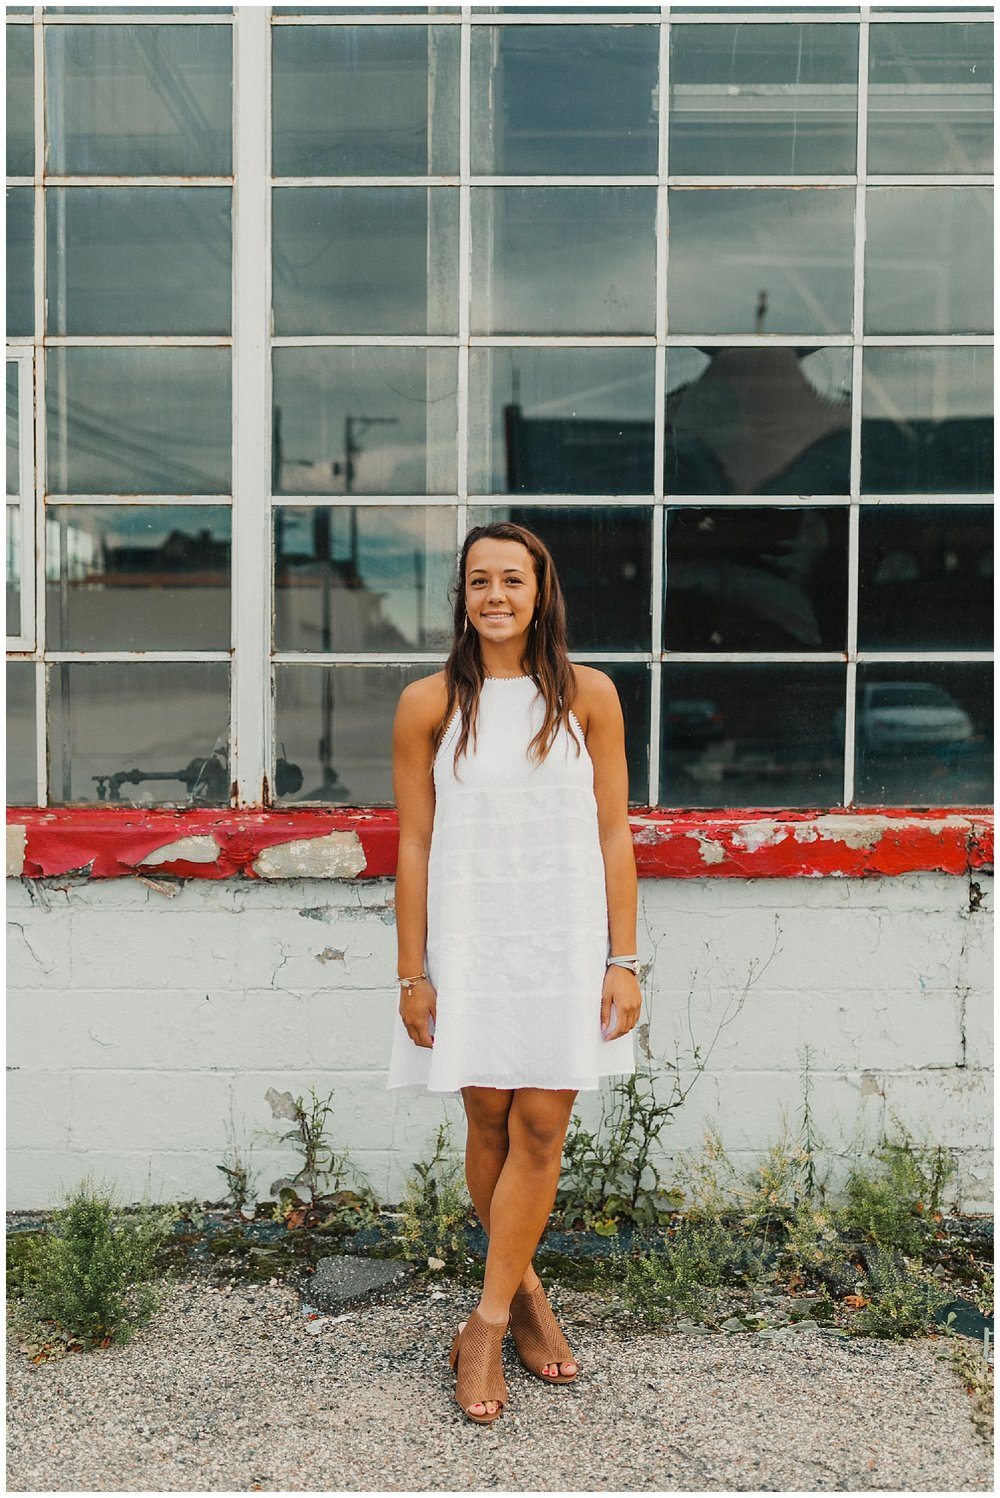 lindybeth photography - senior pictures - sydney-91.jpg